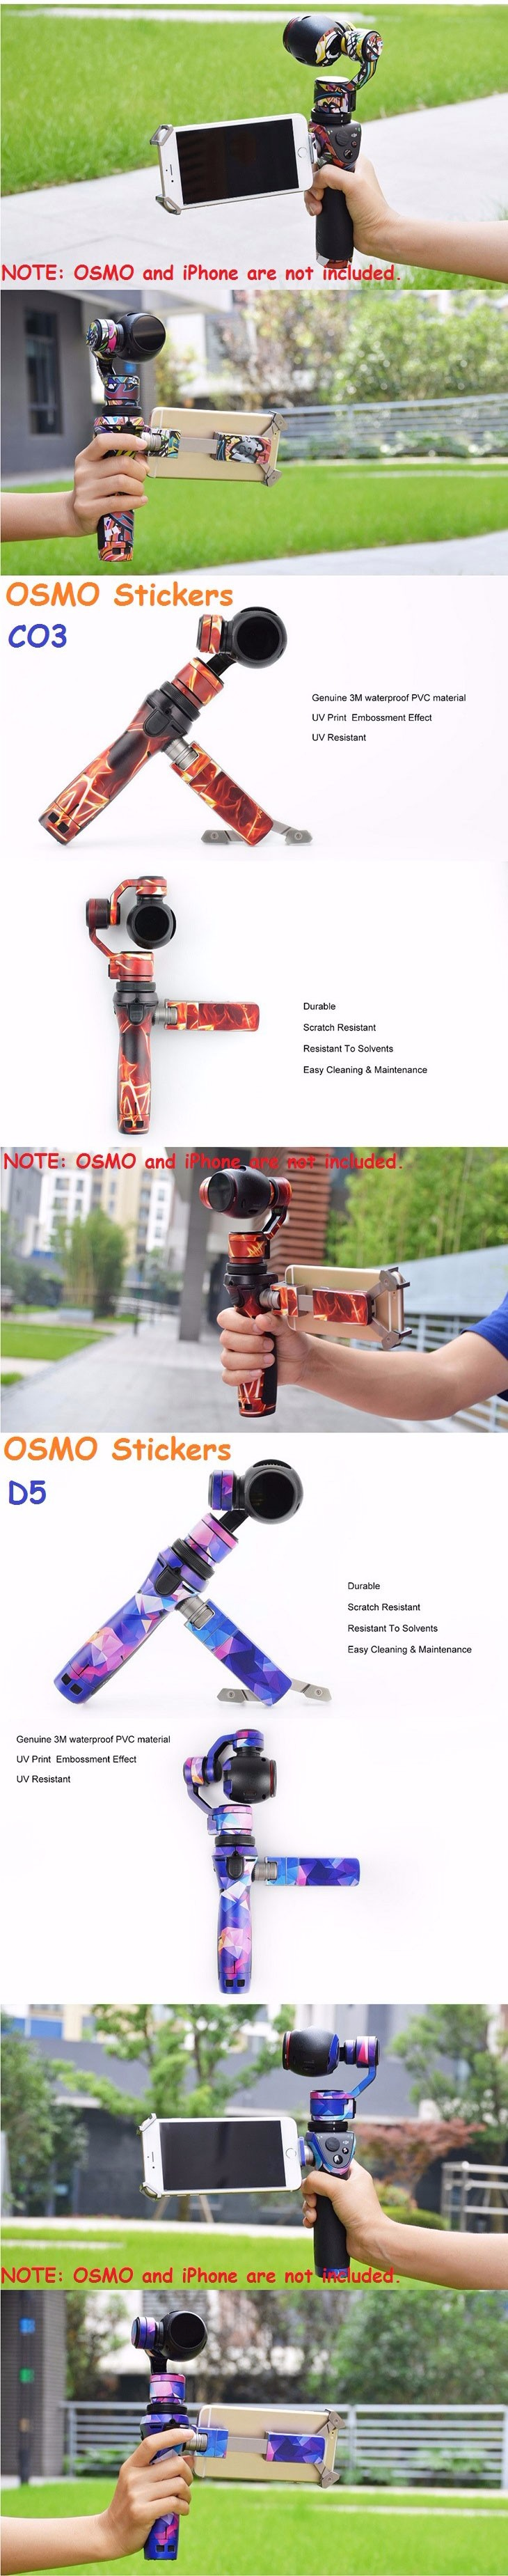 OSMO Stickers Waterproof PVC Decals Skin Wrap Cover 3M Film Accessories for DJI OSMO Handheld Gimbal 4K Camera